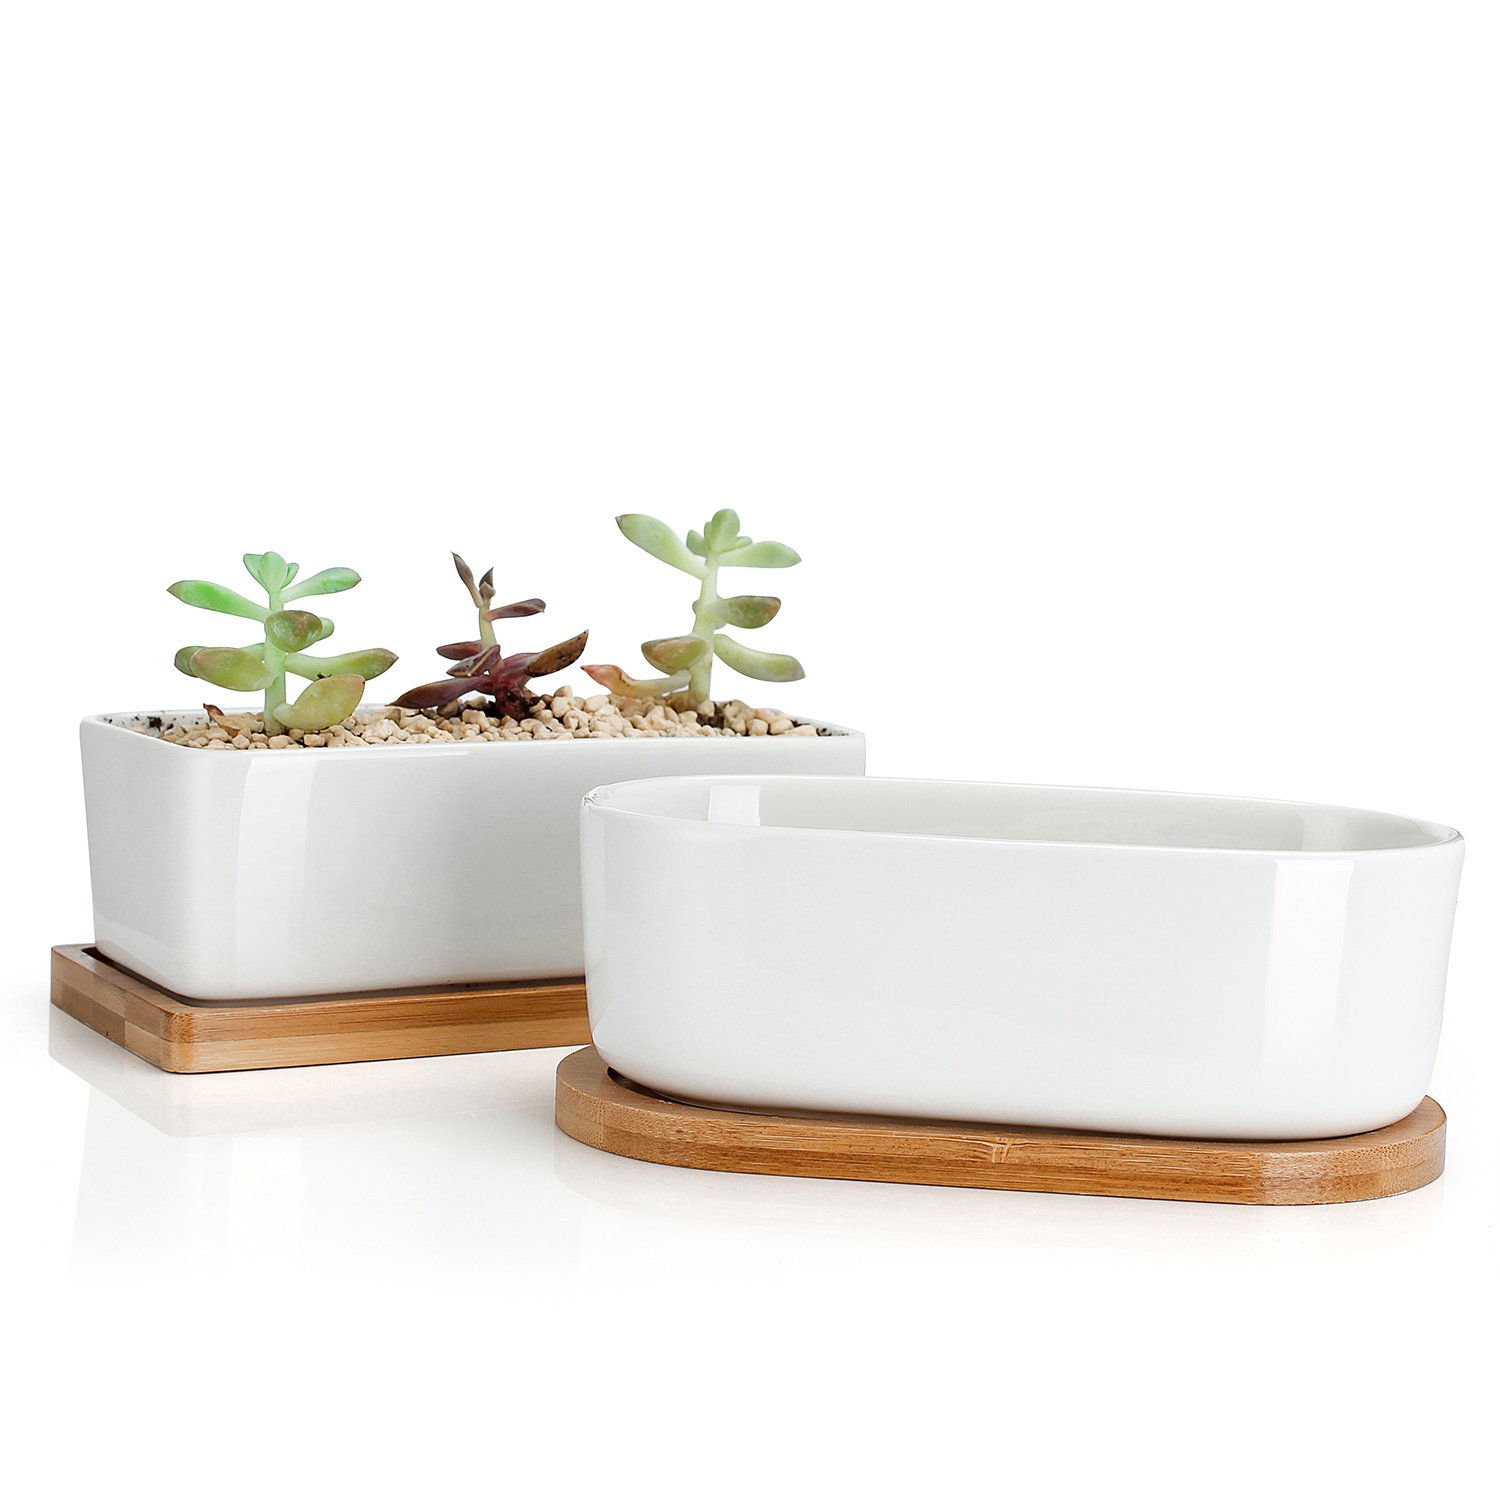 Greenaholics Succulent Plant Pots - 6 Inch Rectangular Ceramic Planters, Small Cactus Container, Bonsai Pots, Flower Pots with Drainage Hole, Bamboo Tray, Set of 2, White by Greenaholics